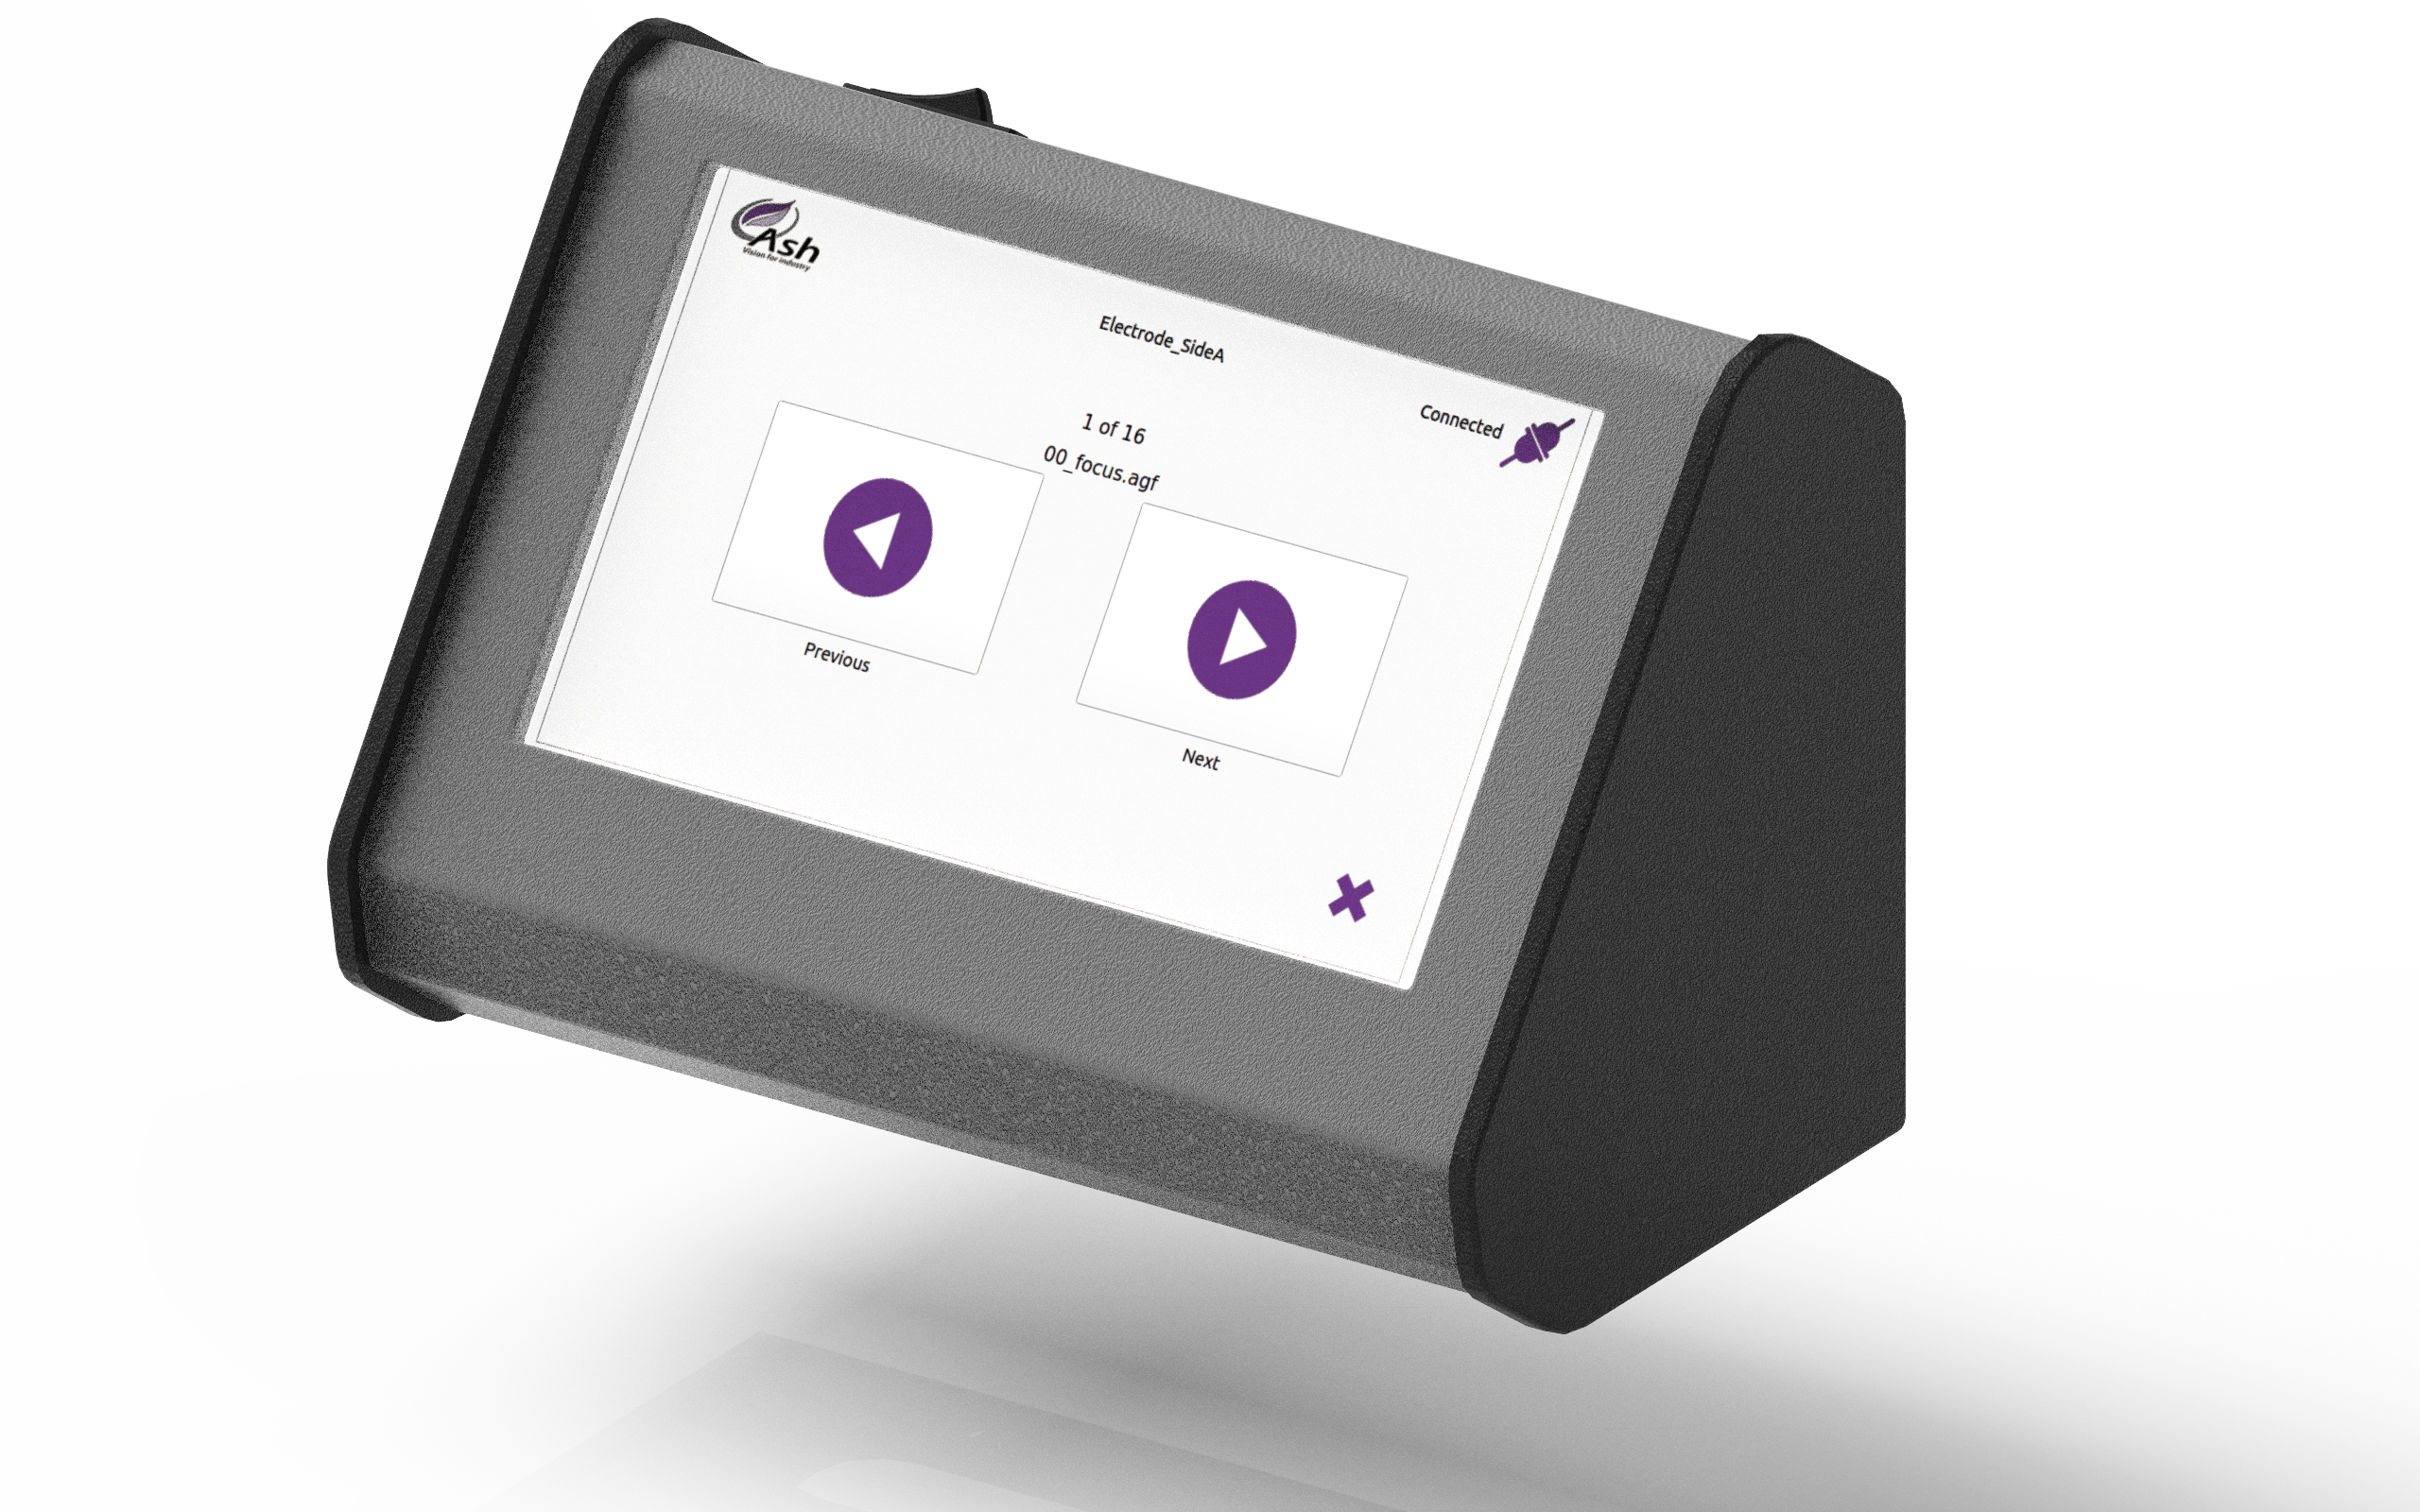 Omni Touchscreen Workflow Controller